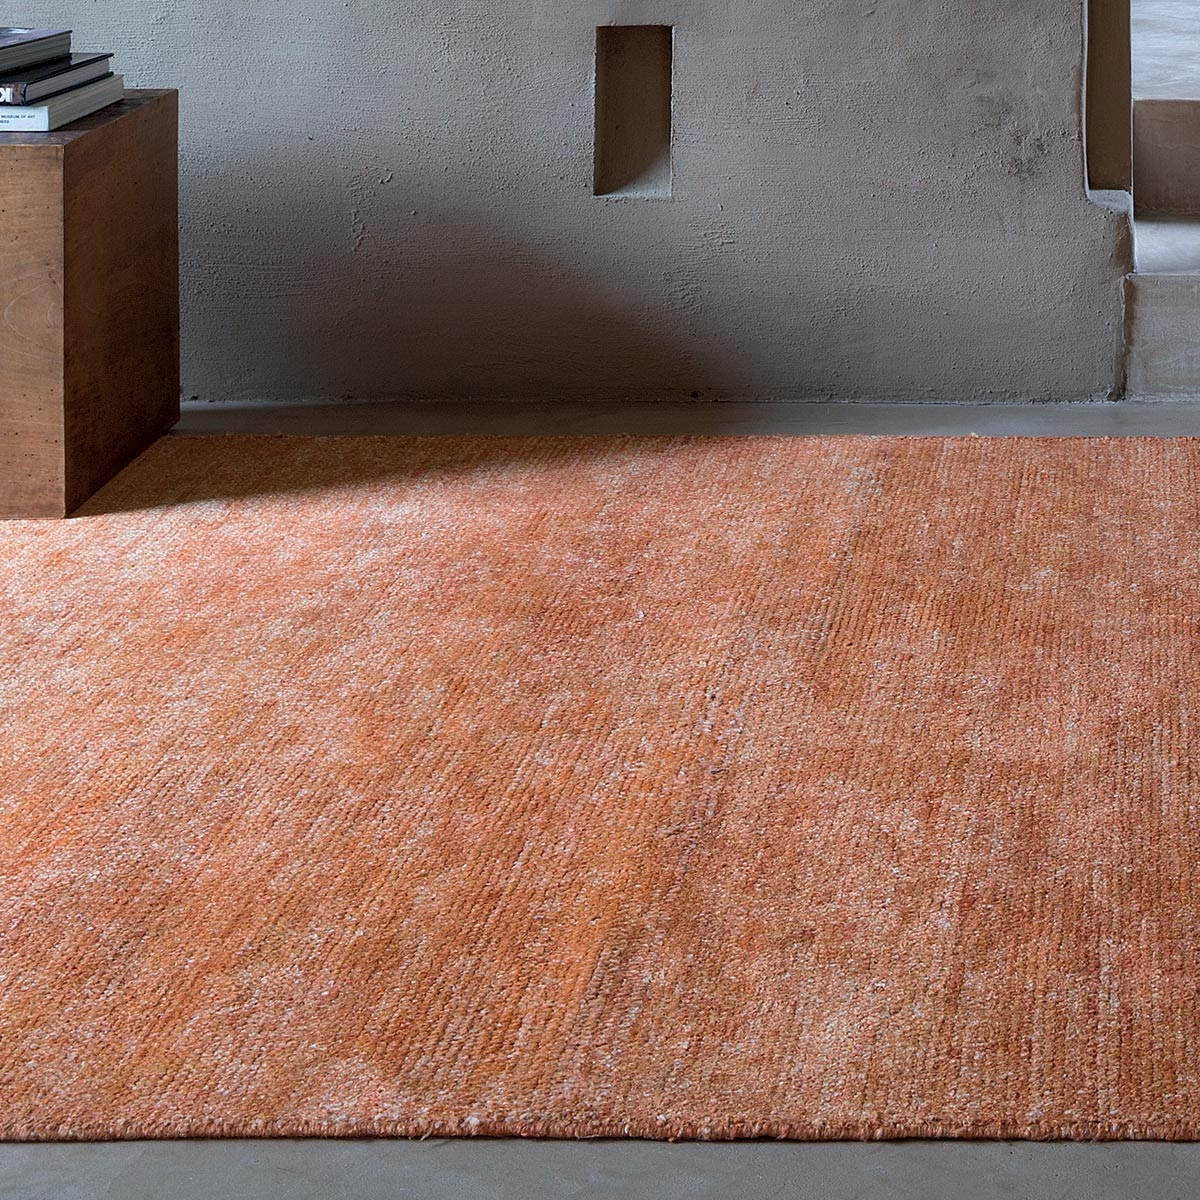 Tapis Orange Et Gris Tapis Sur Mesure Orange En Viscose Tissé à La Main Et Fin